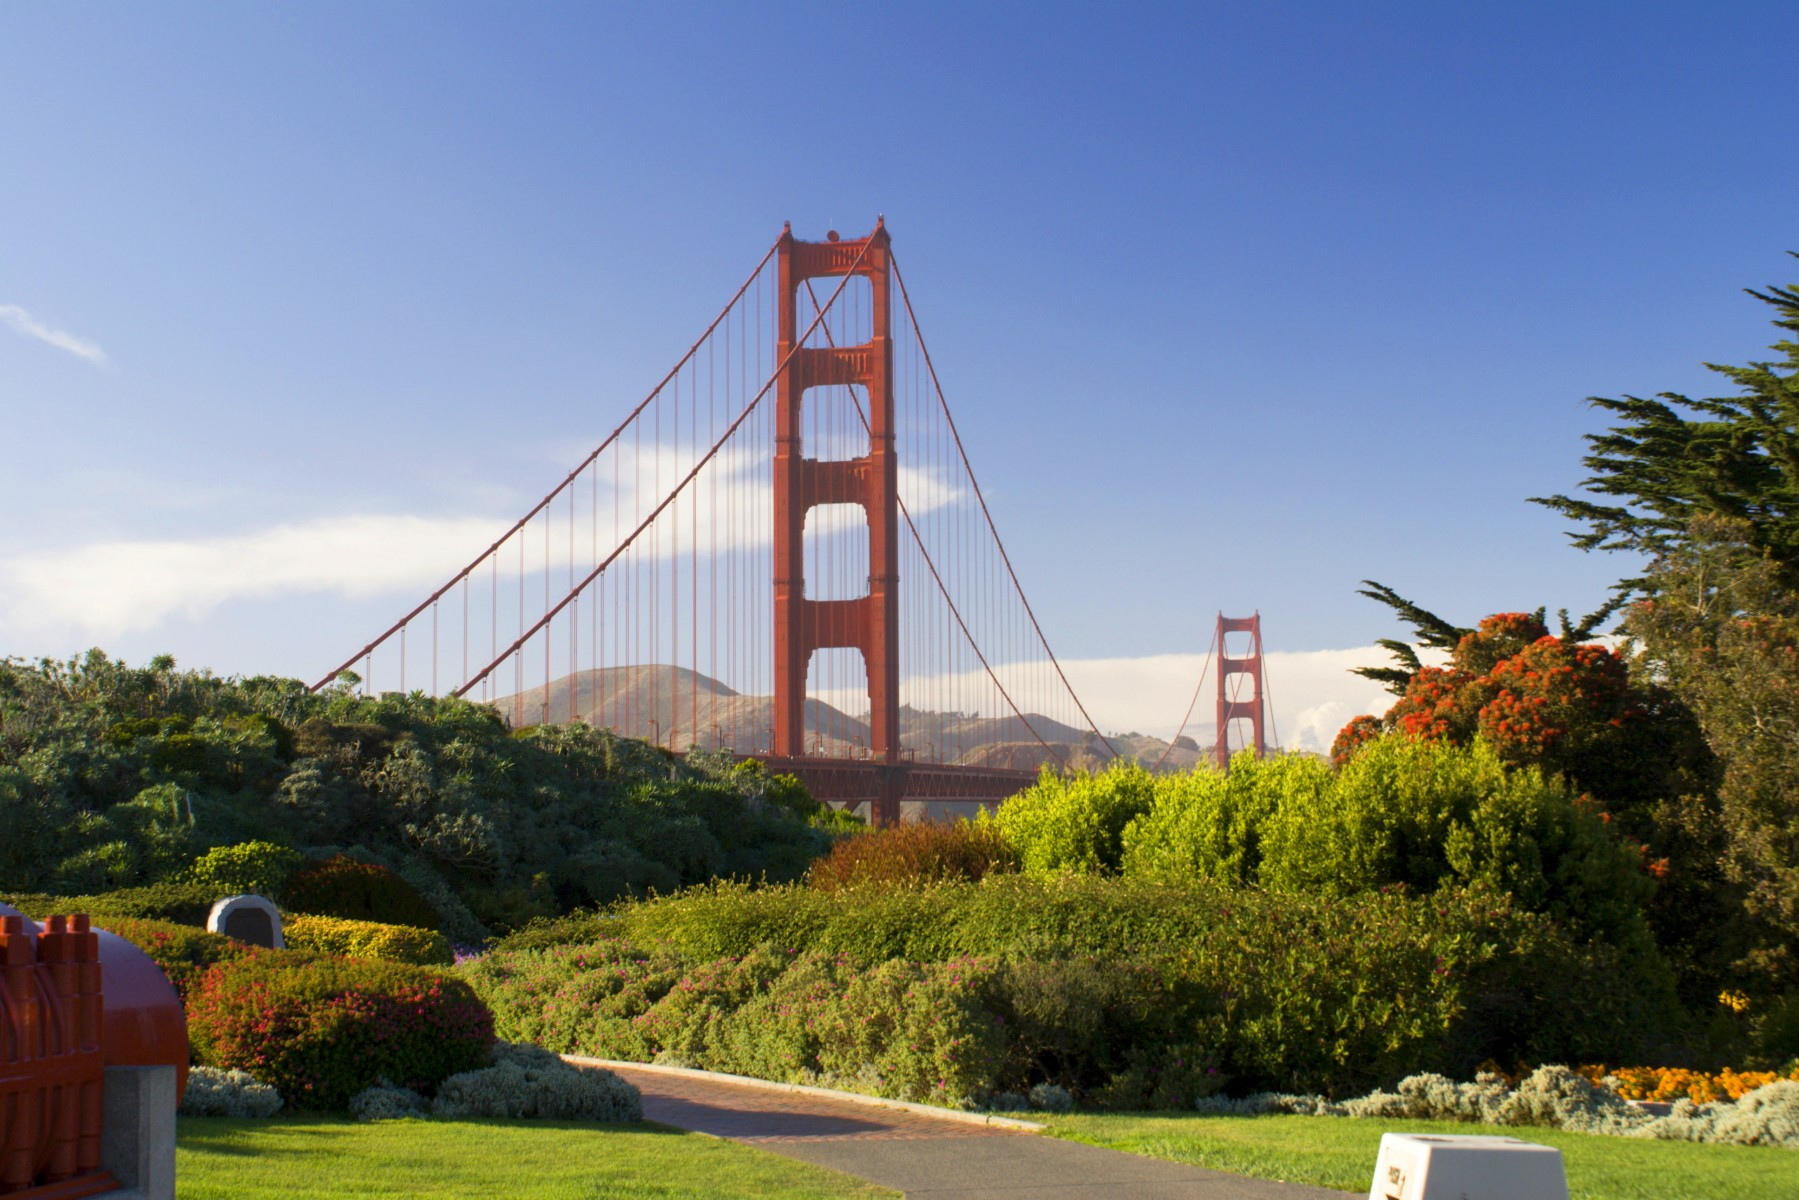 Golden Gate Bridge Park